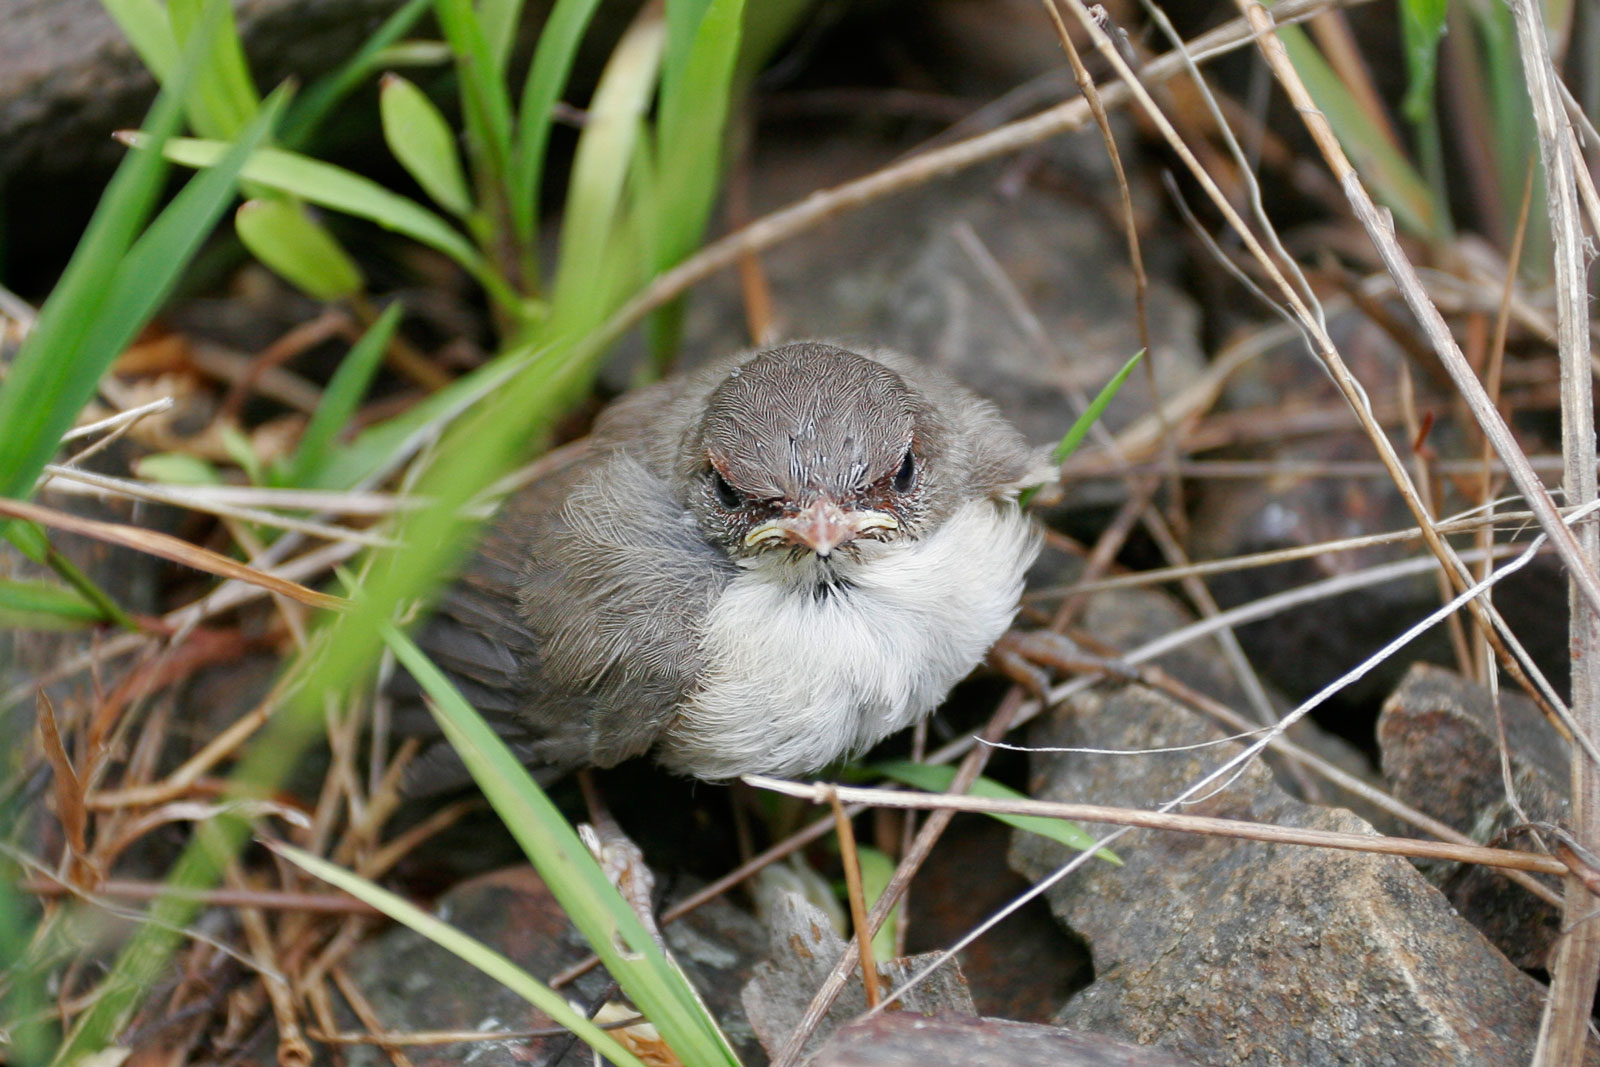 File:Baby Bird Learning To Fly.jpg